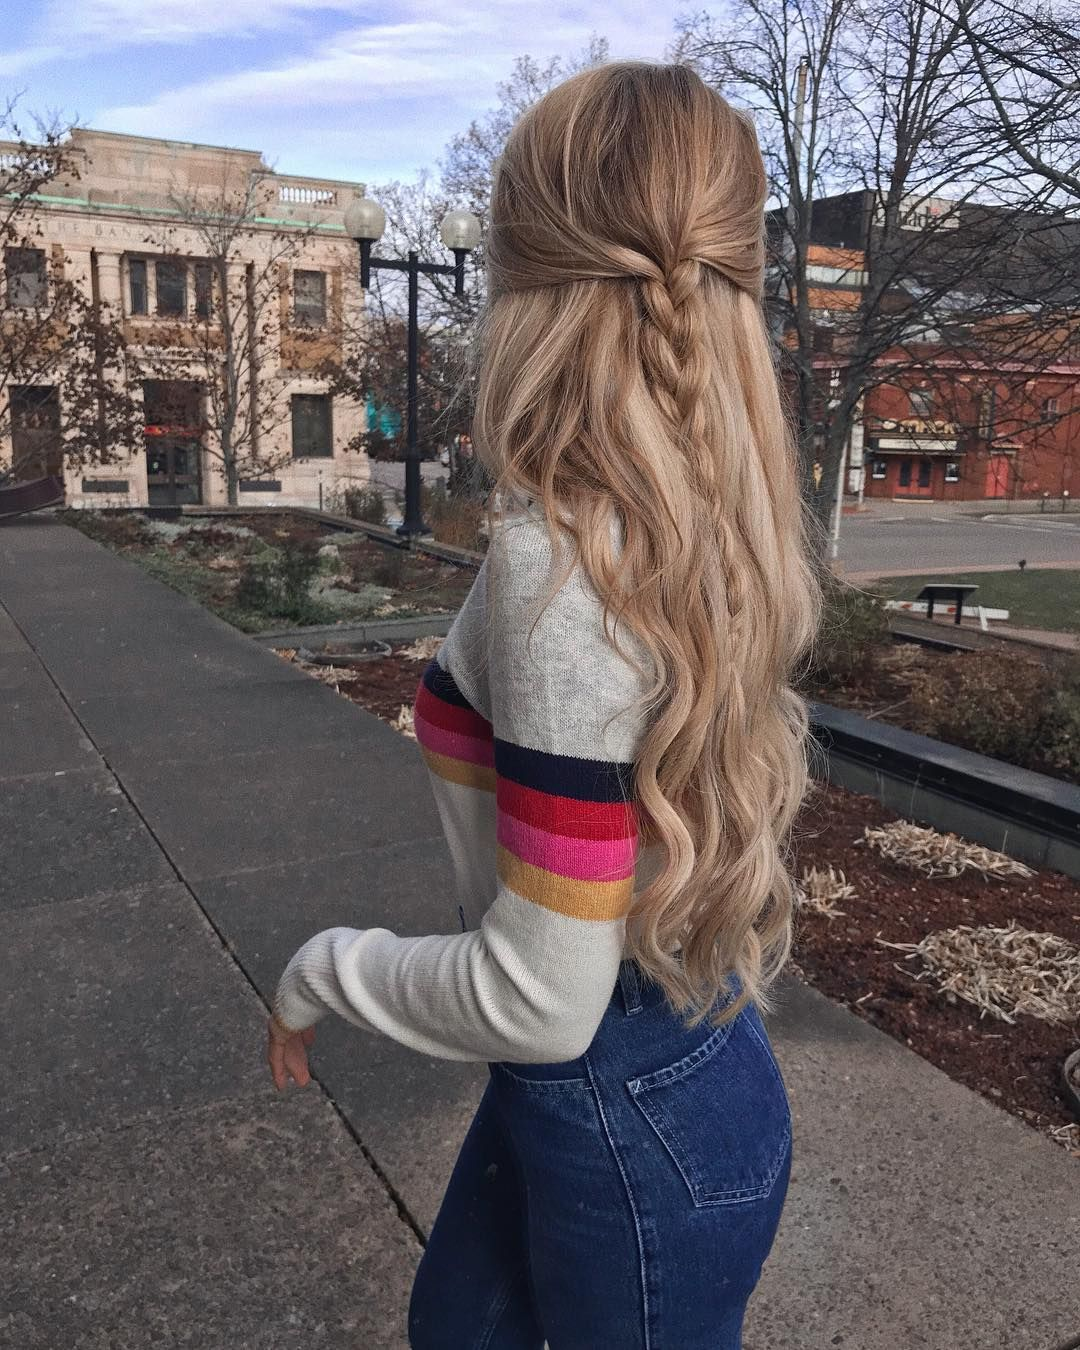 Half up twisted braid blonde curled hair with half up hairstyle